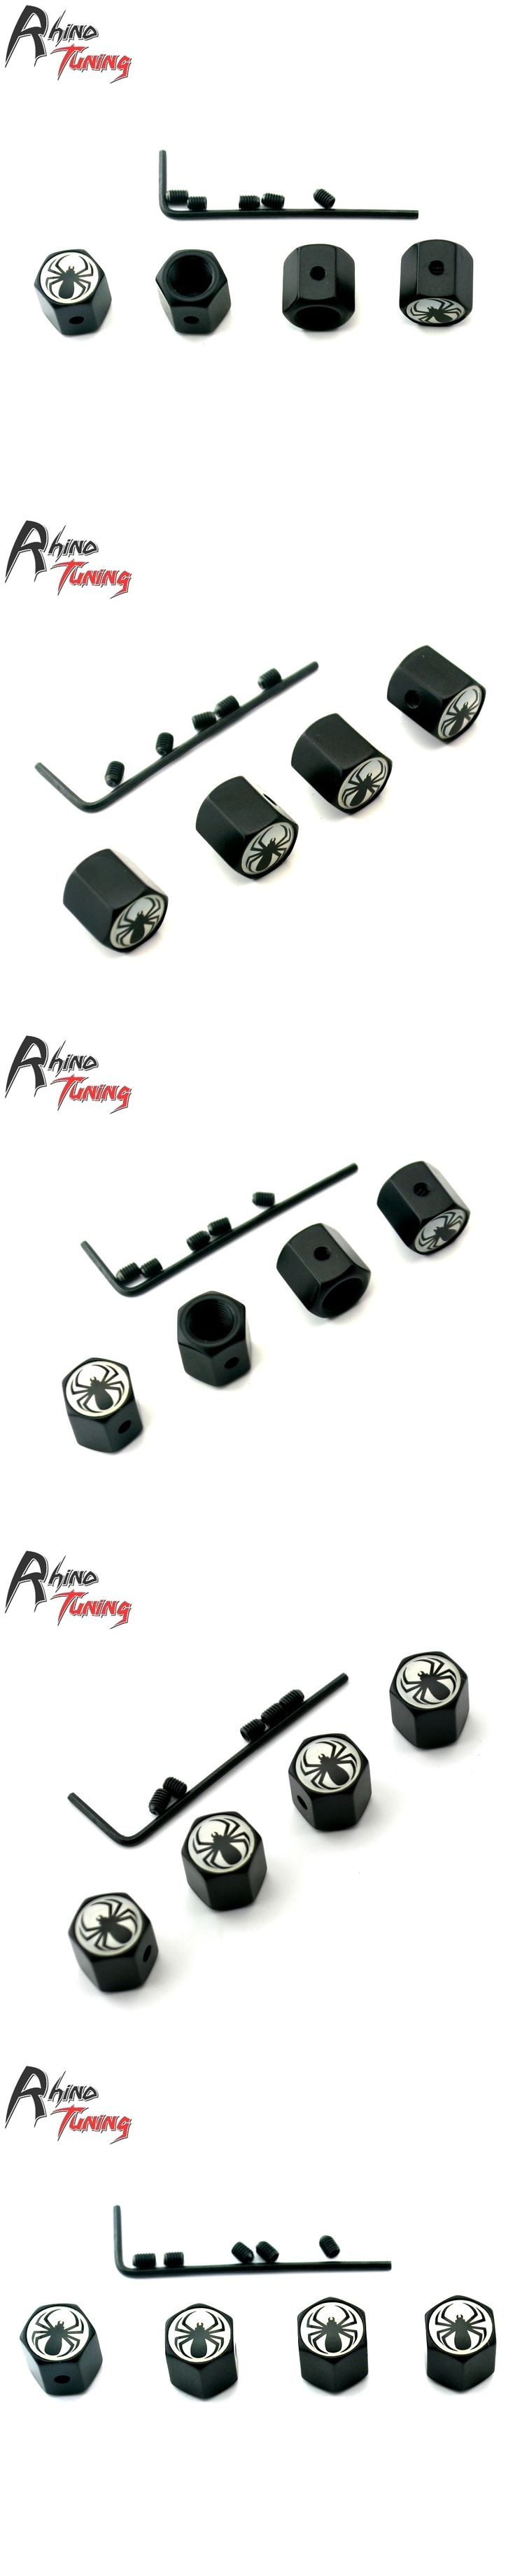 Rhino Tuning 4Pcs Spider Logo Auto Car Wheel Tyre Valve Caps Metal Fit for All Car Auto Tire Valve Dust Caps 075